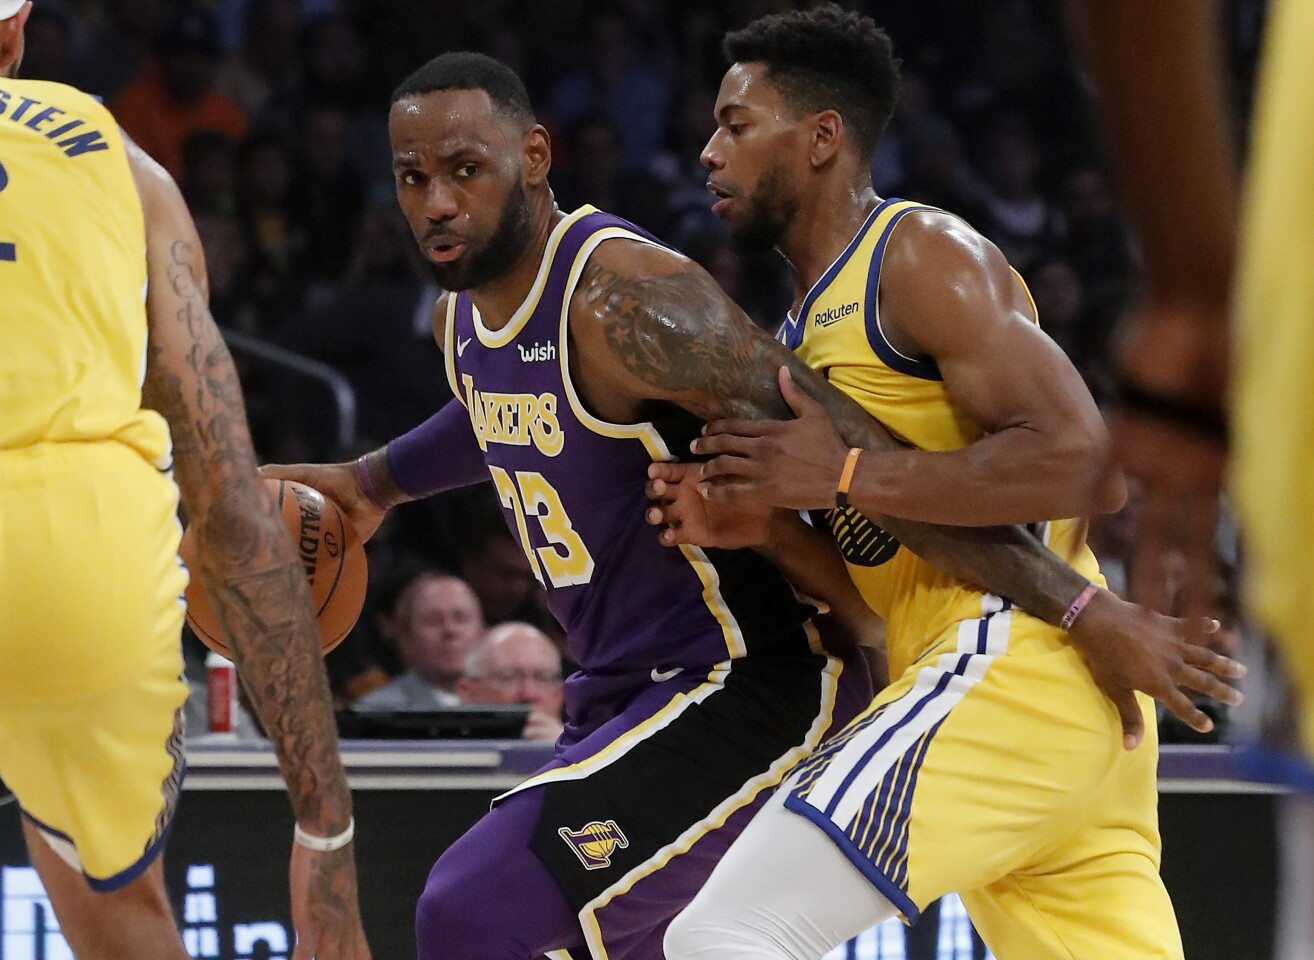 LOS ANGELES, CALIF. - NOV. 13, 2019. Lakers forward LeBron James tries to work the ball inside against Warriors forward Glenn Robinson III in the first quarter at Staples Center in Los Angeles on Wednesday night, Nov. 13, 2019. (Luis Sinco/Los Angeles Times)